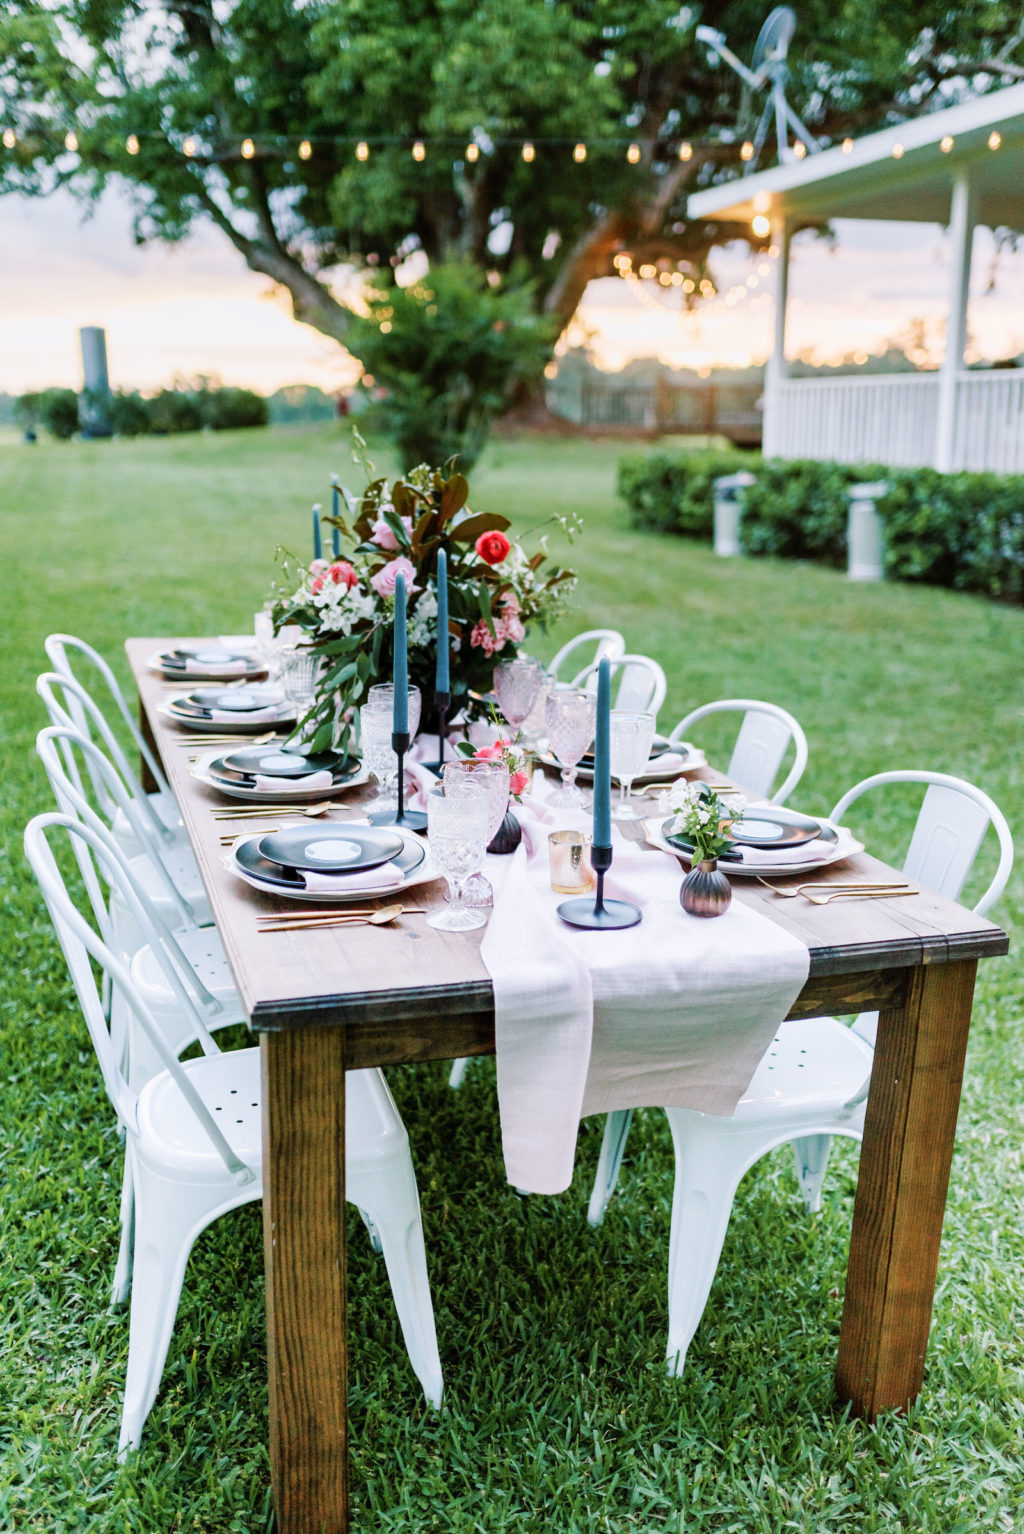 Southern Elegant Inspired Florida Outdoor Wedding Reception, Wood Table with Dark Blue Place Setting, Gold Flatware, Pink Burlap Linens, Multicolored Glass Goblets, Floral Centerpiece with Magnolia Leaves | Tampa Bay Wedding Planner EventFull Weddings | Florida Wedding Rentals Over The Top Linens | Two Sisters Ranch Dade City Florida